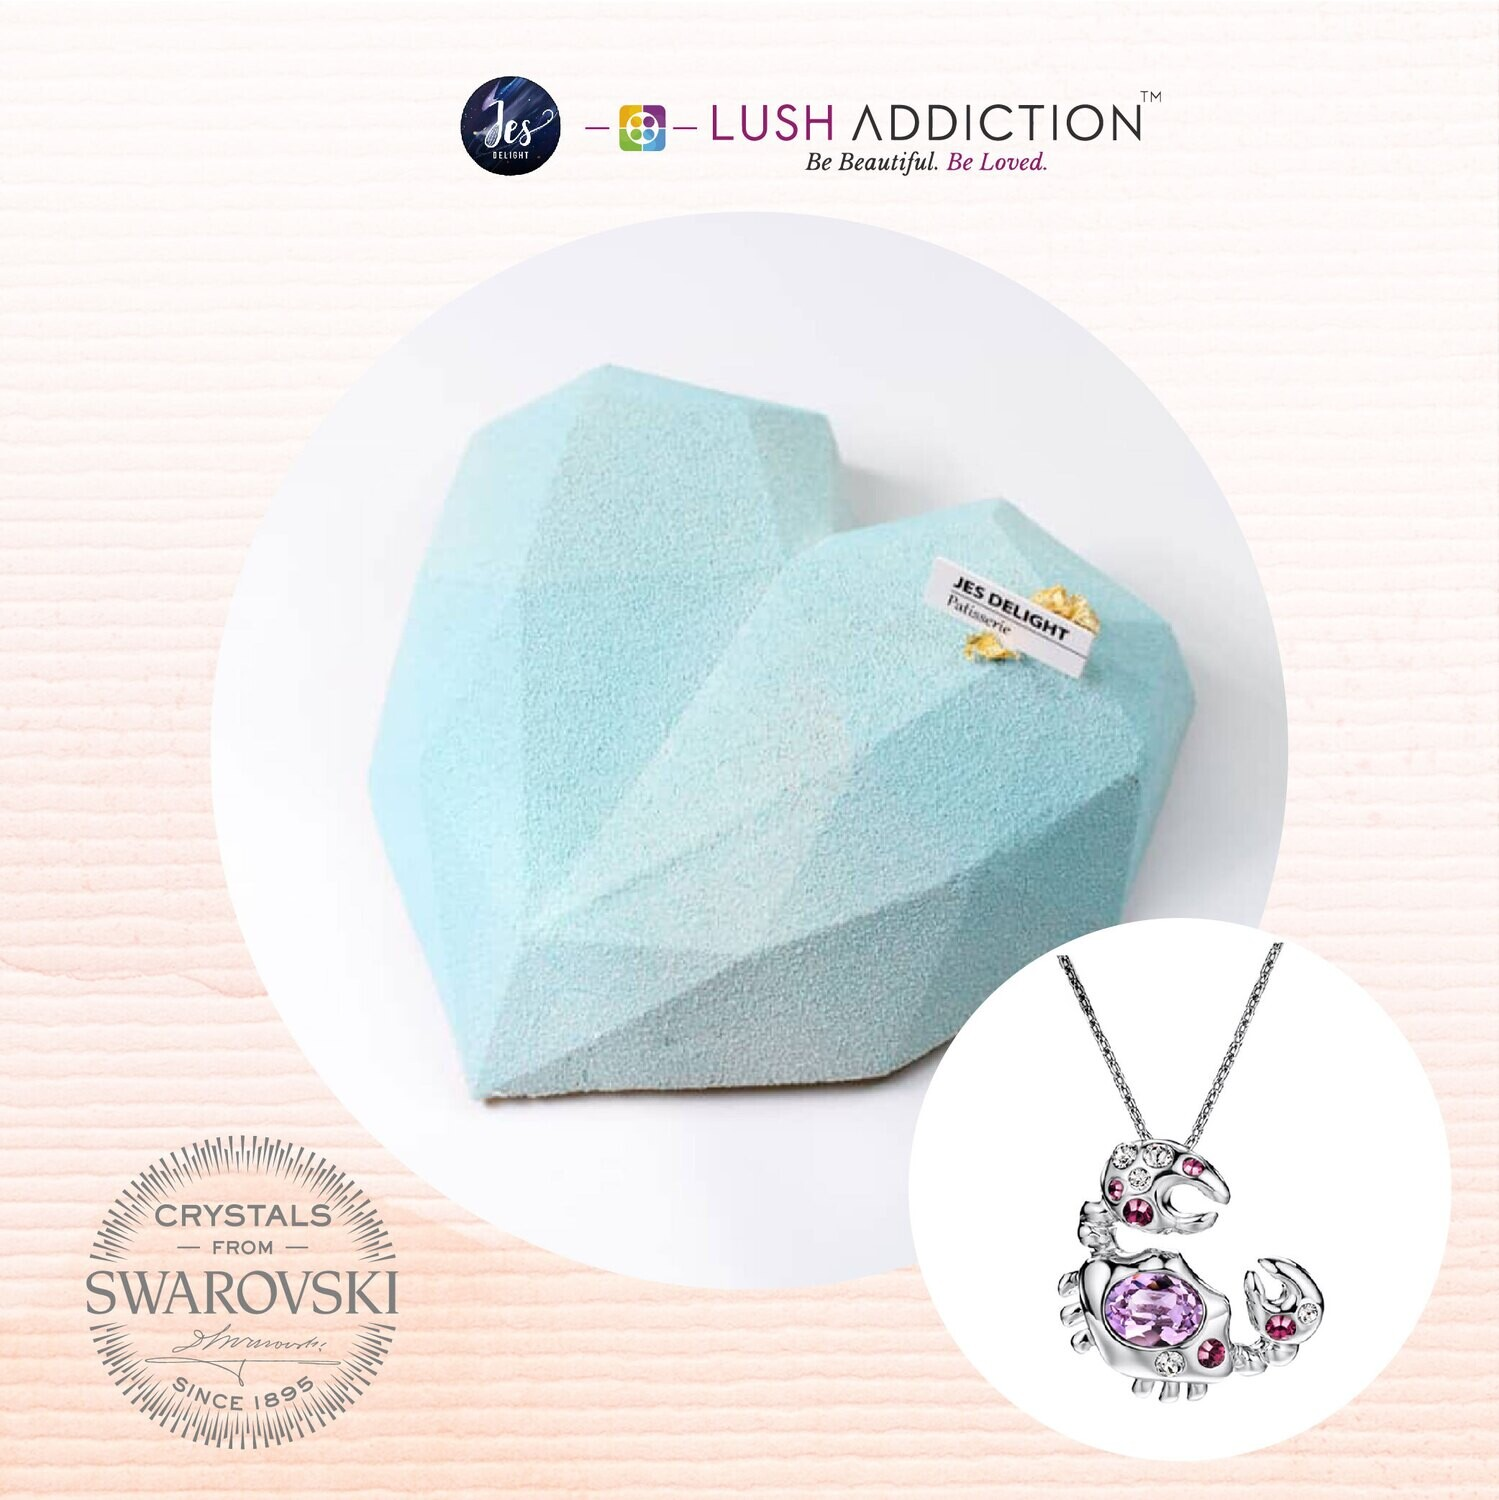 Blue Diamond Cake + Lush Cancer Horoscope Necklace Bundle Deal (By: JES Delight from JB)